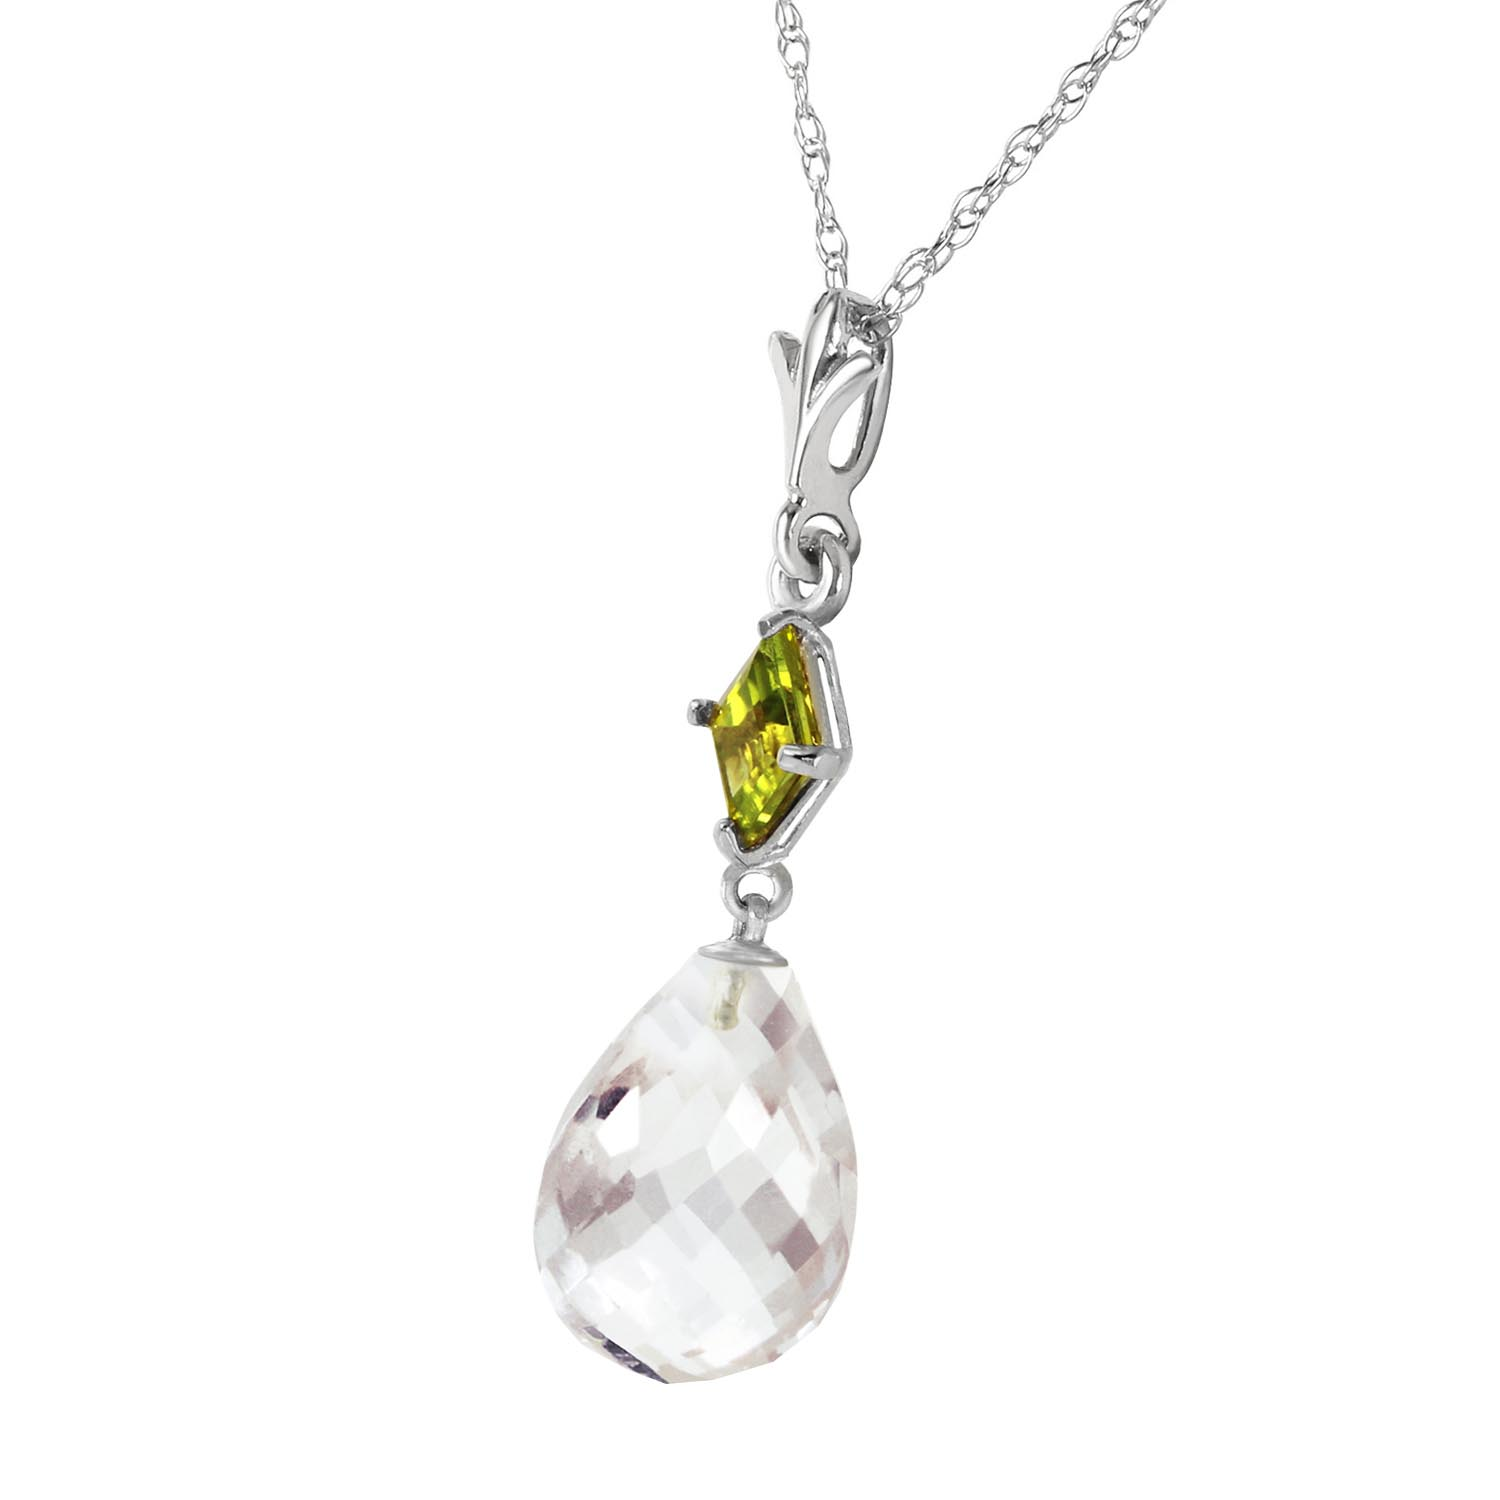 White Topaz and Peridot Pendant Necklace 5.5ctw in 9ct White Gold